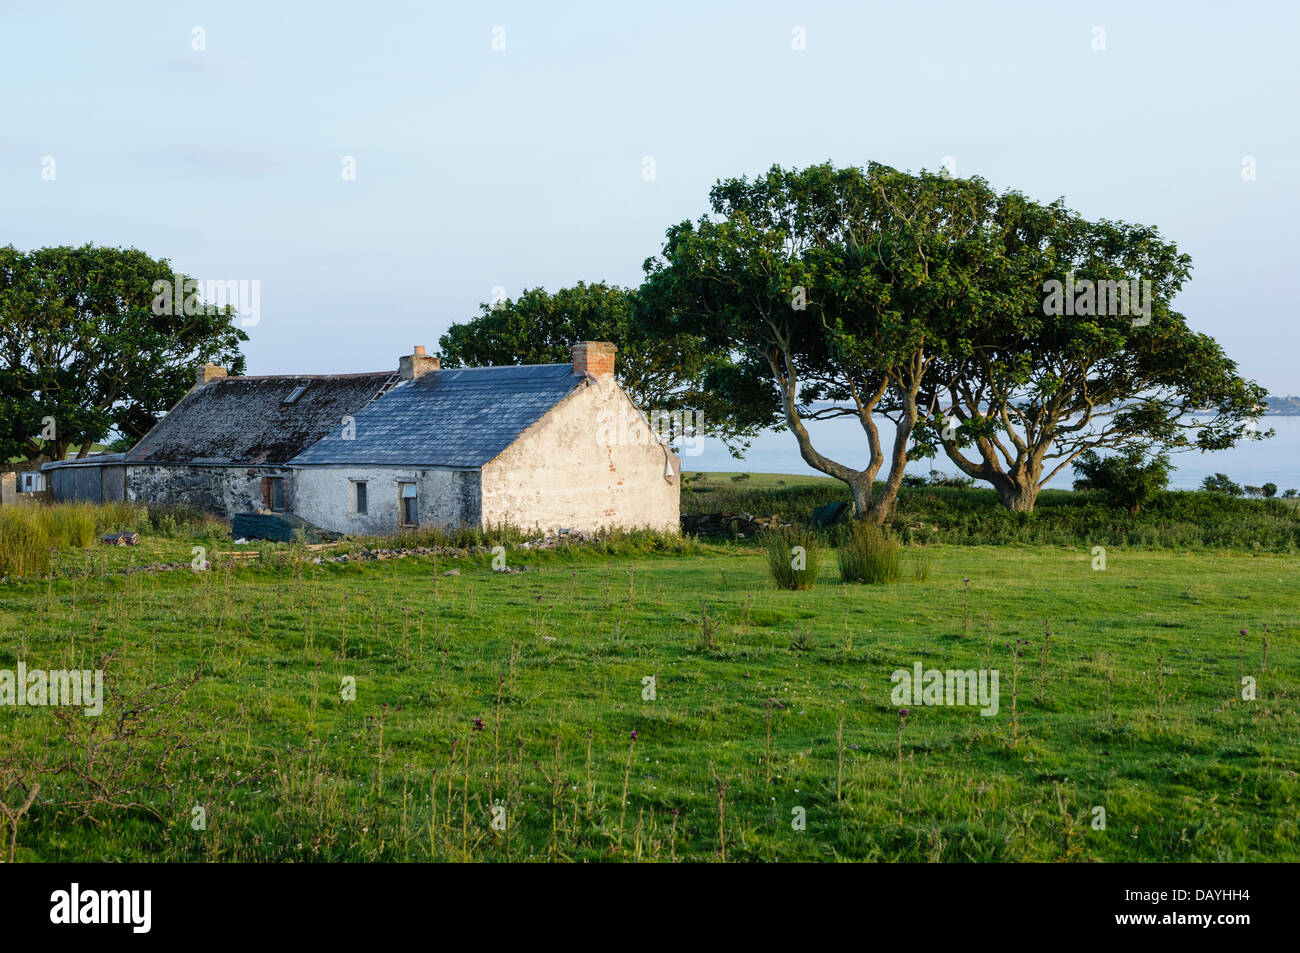 House on the Copeland Island, Northern Ireland, which is occupied during the summer. - Stock Image